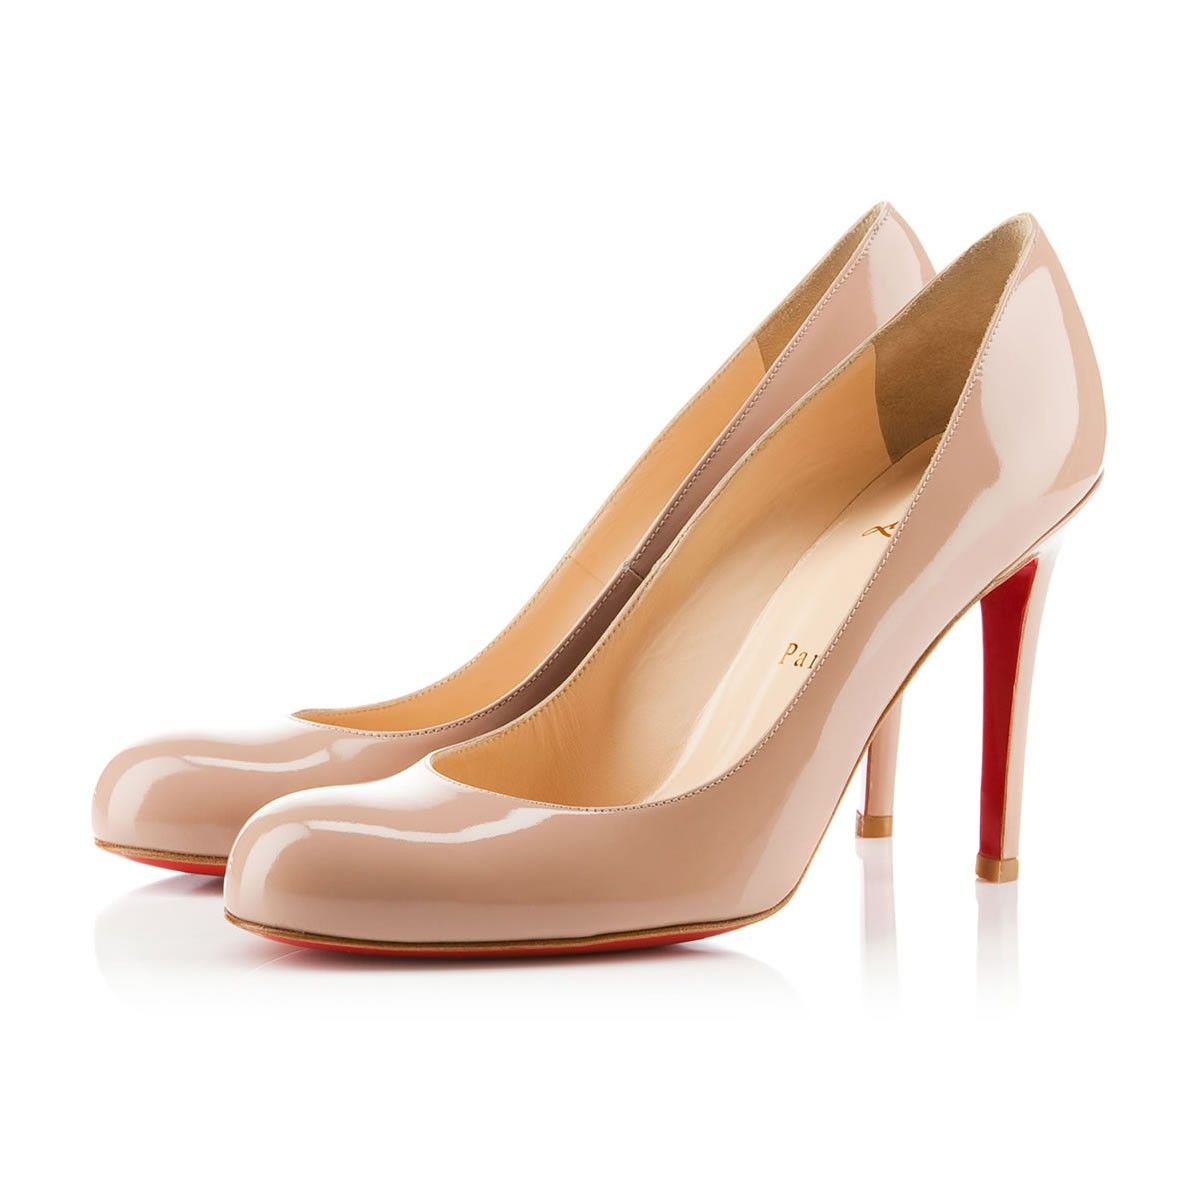 19abf07cb41a Simple Pump 100mm Nude Patent Leather. Simple Pump 100mm Nude Patent Leather  Louboutin High Heels